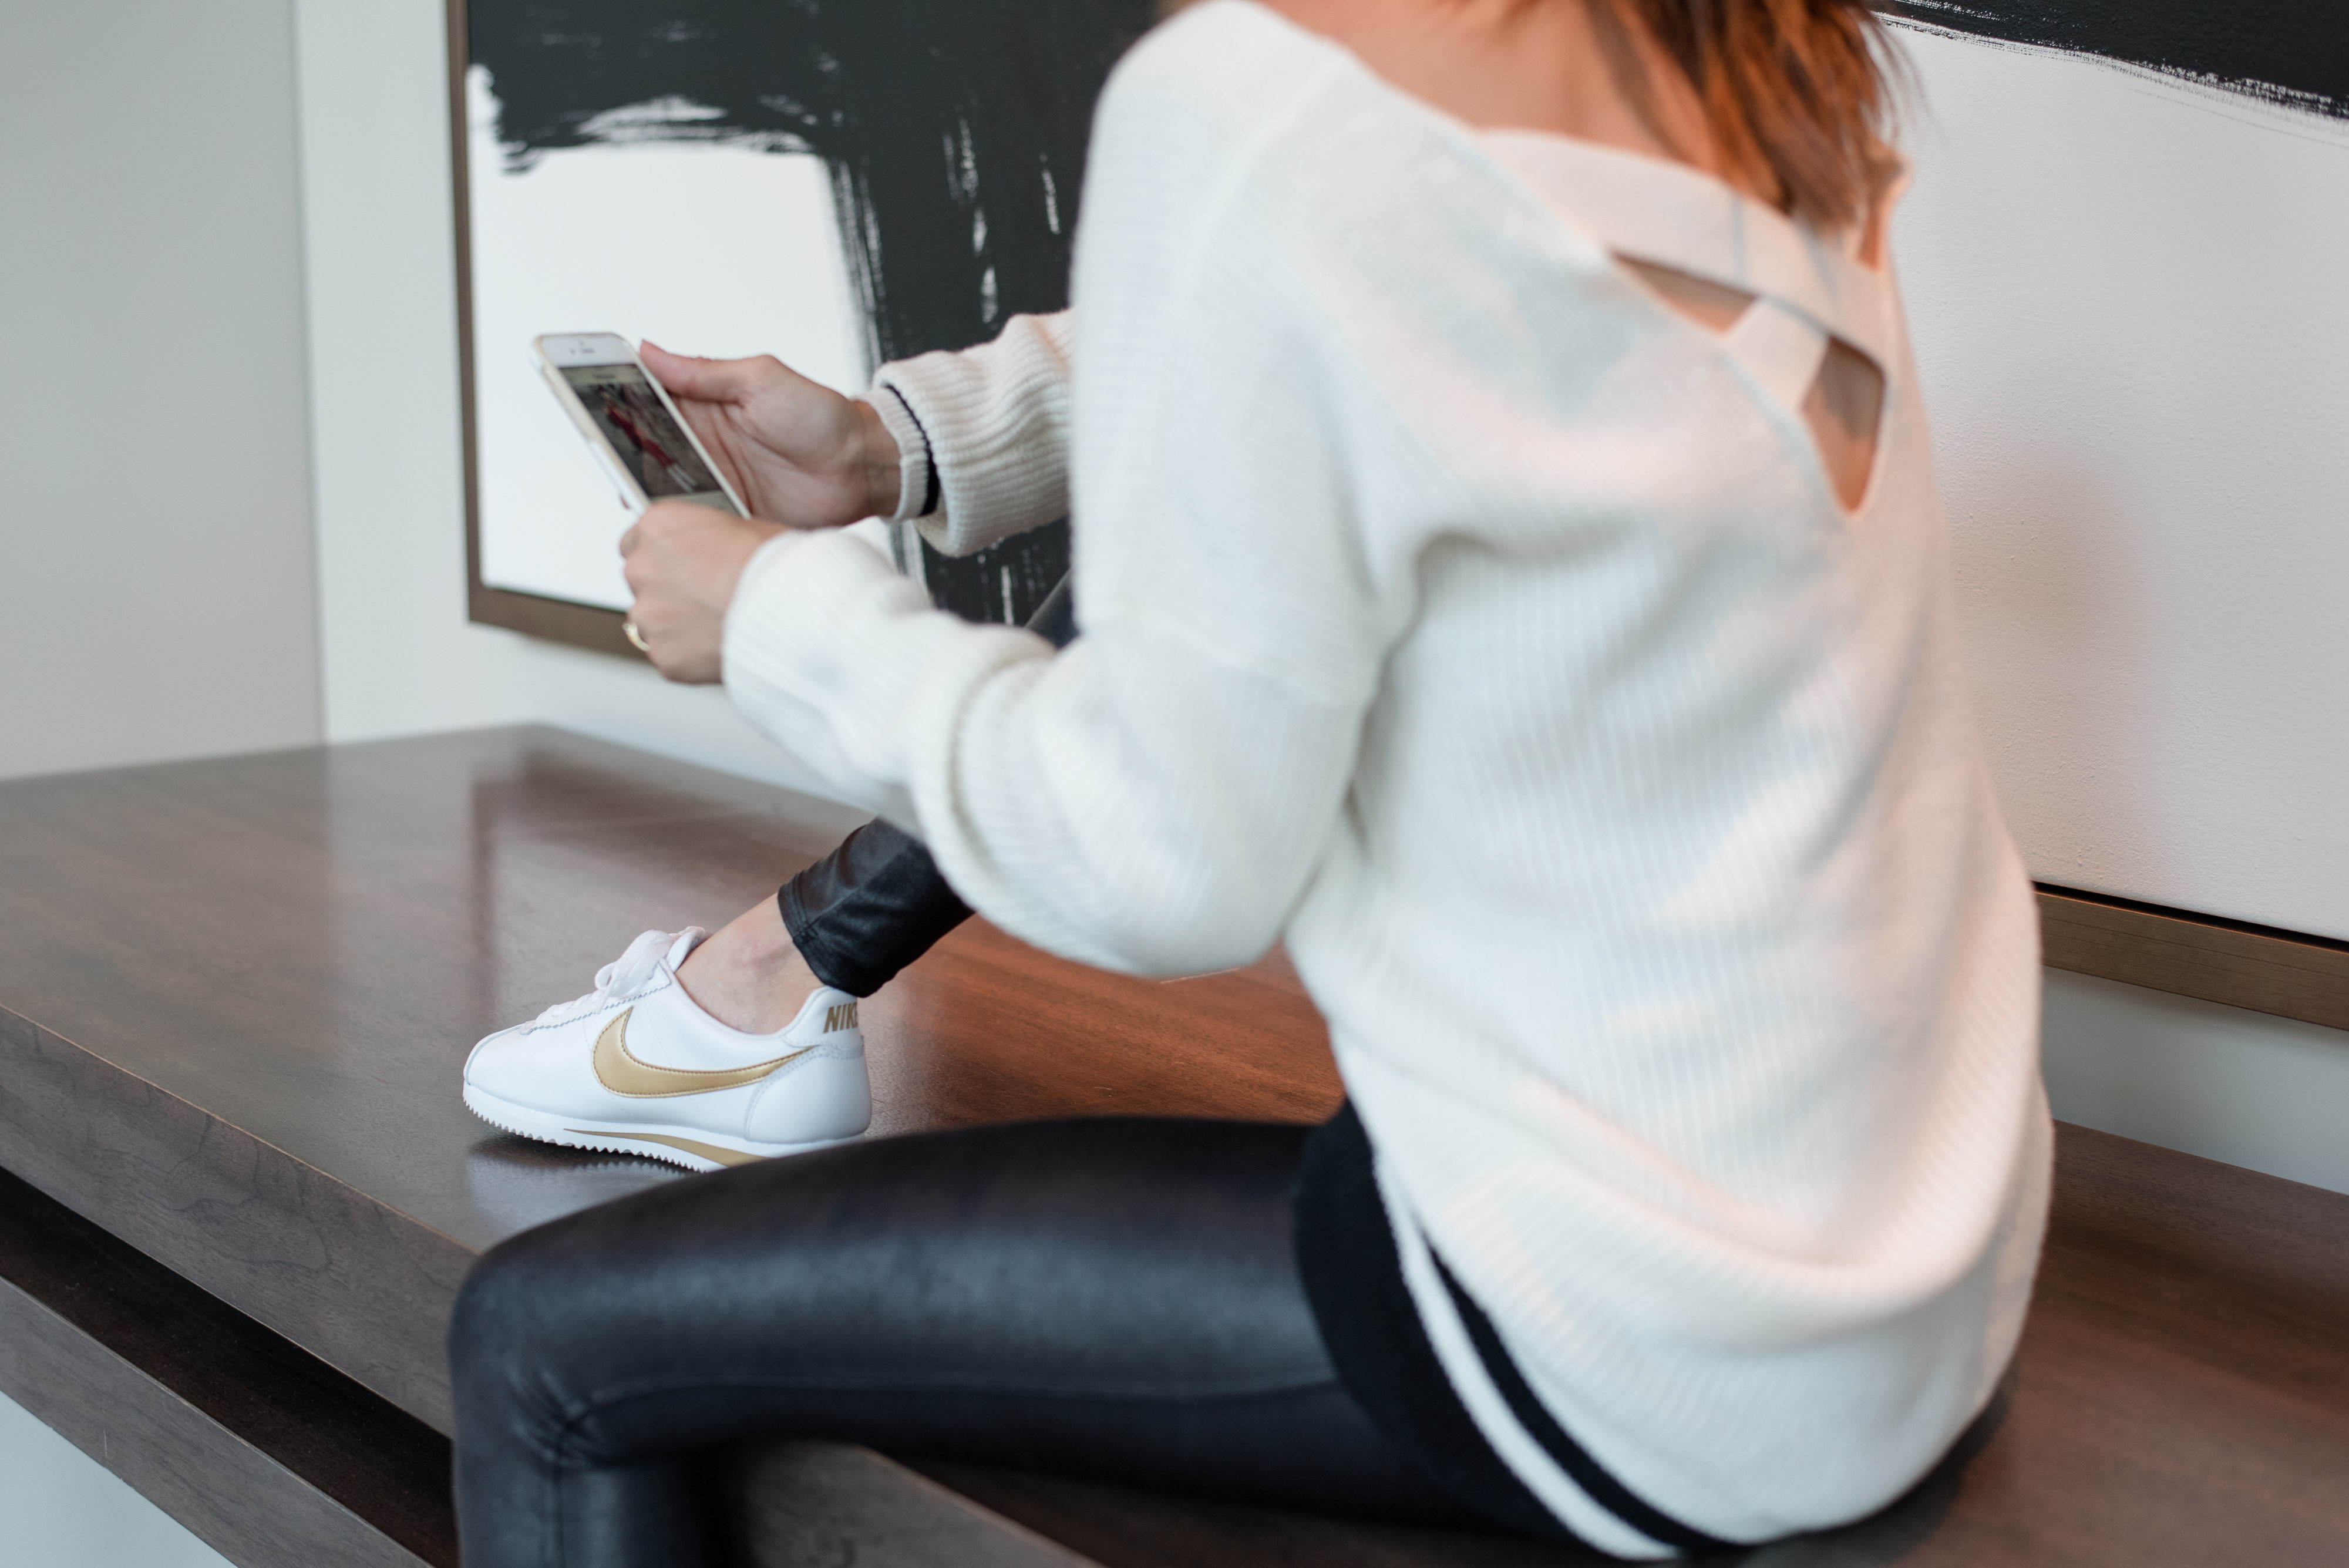 leggings, pants, faux leather, spanx, fall fashion, sweater, criss cross, details, knit, casual, everyday style, method39,